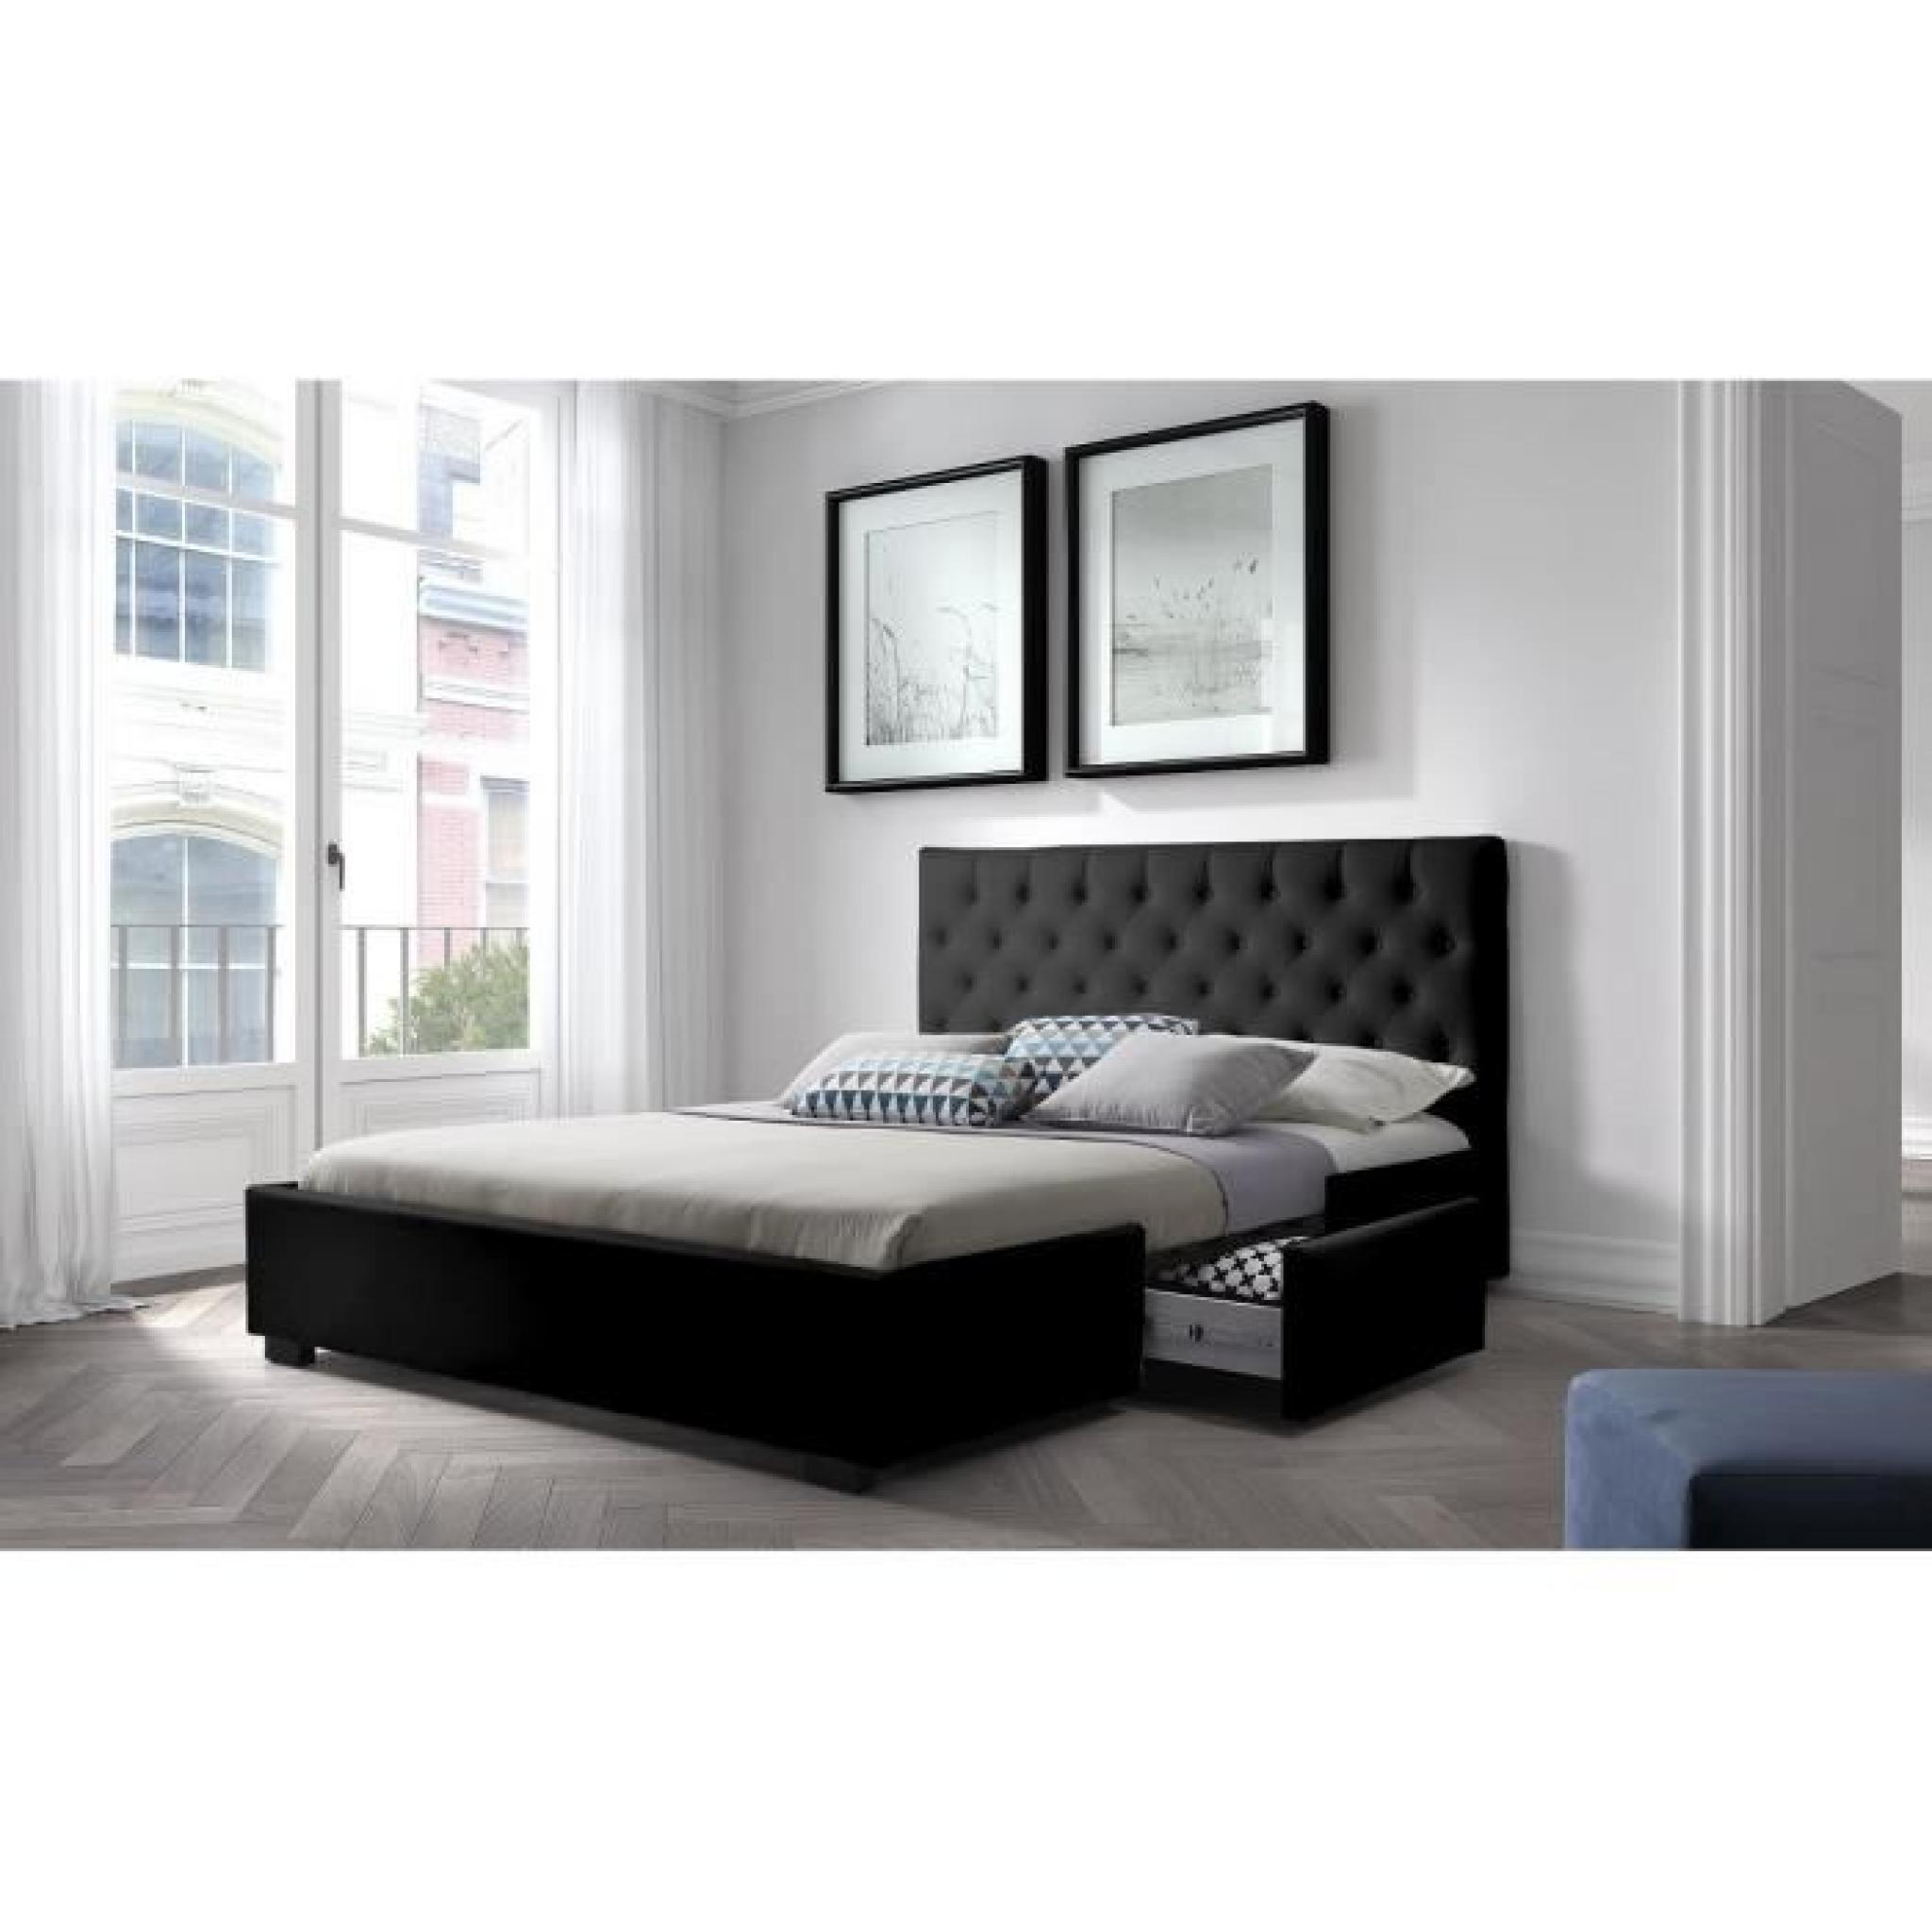 sommier tapissier 180x200 sommier tapissier 180x200 with sommier tapissier 180x200 sommier. Black Bedroom Furniture Sets. Home Design Ideas